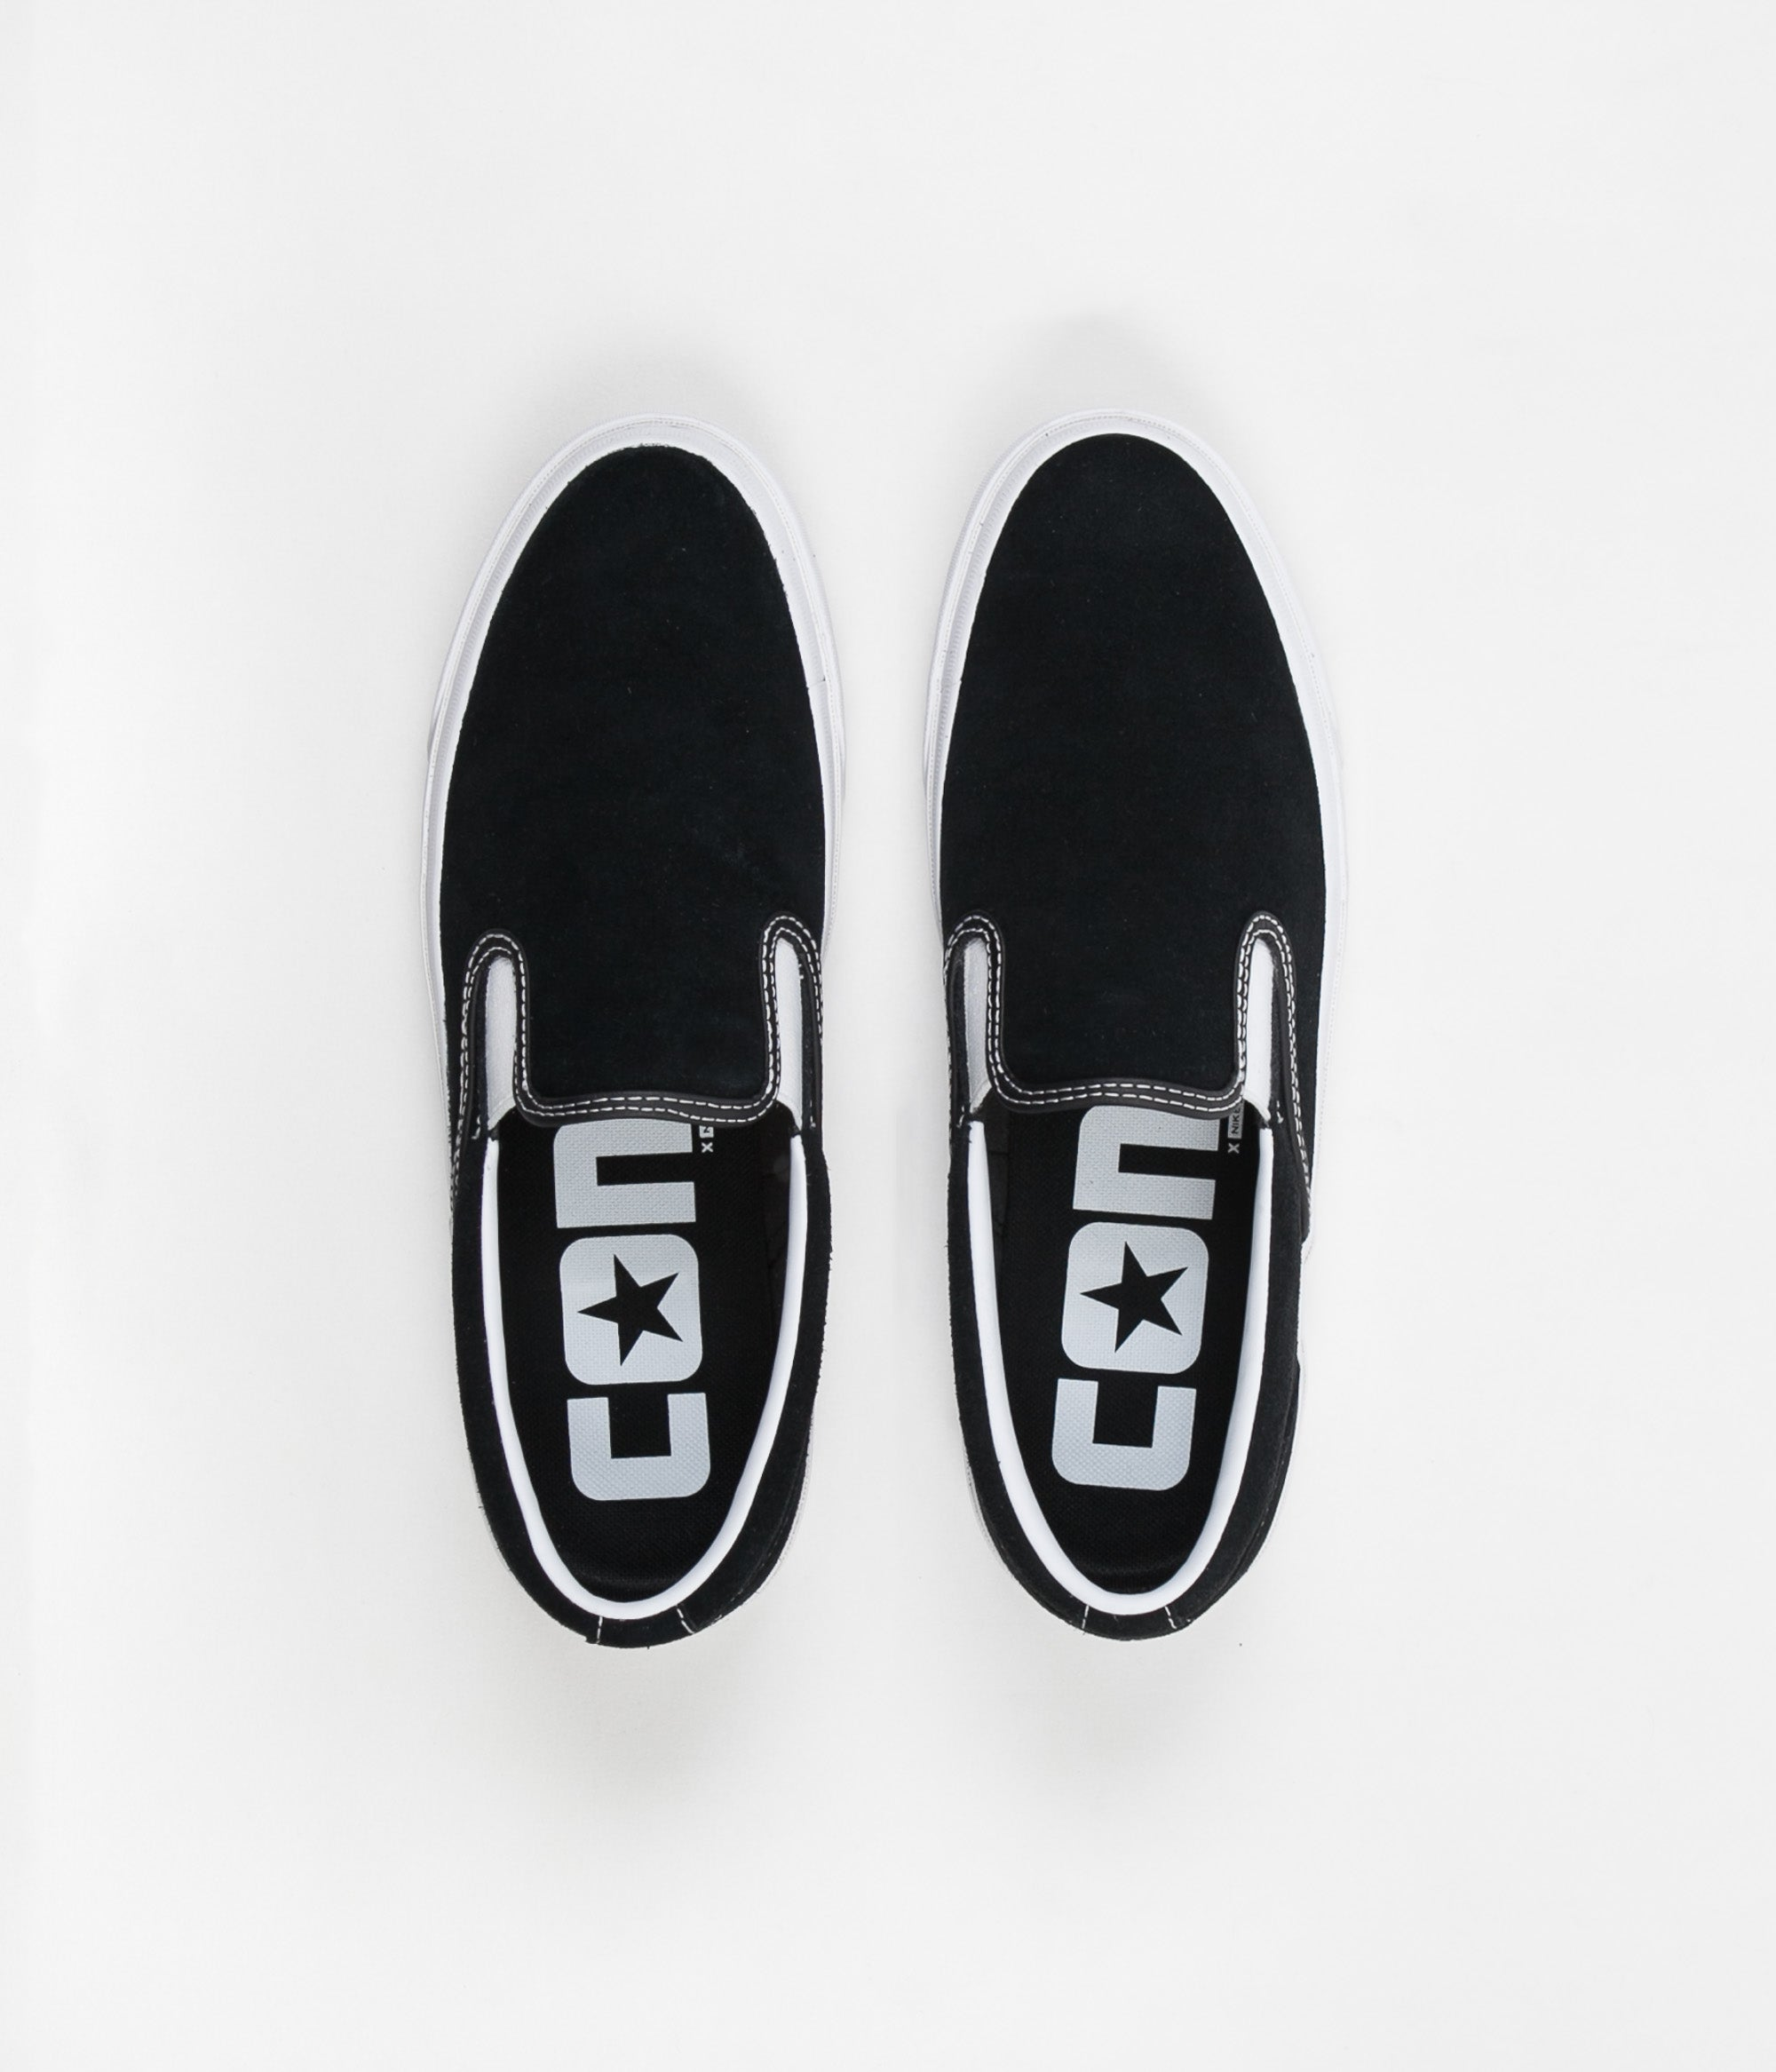 Converse One Star CC Slip On Shoes - Black   White   White ... ab1e404ab9802